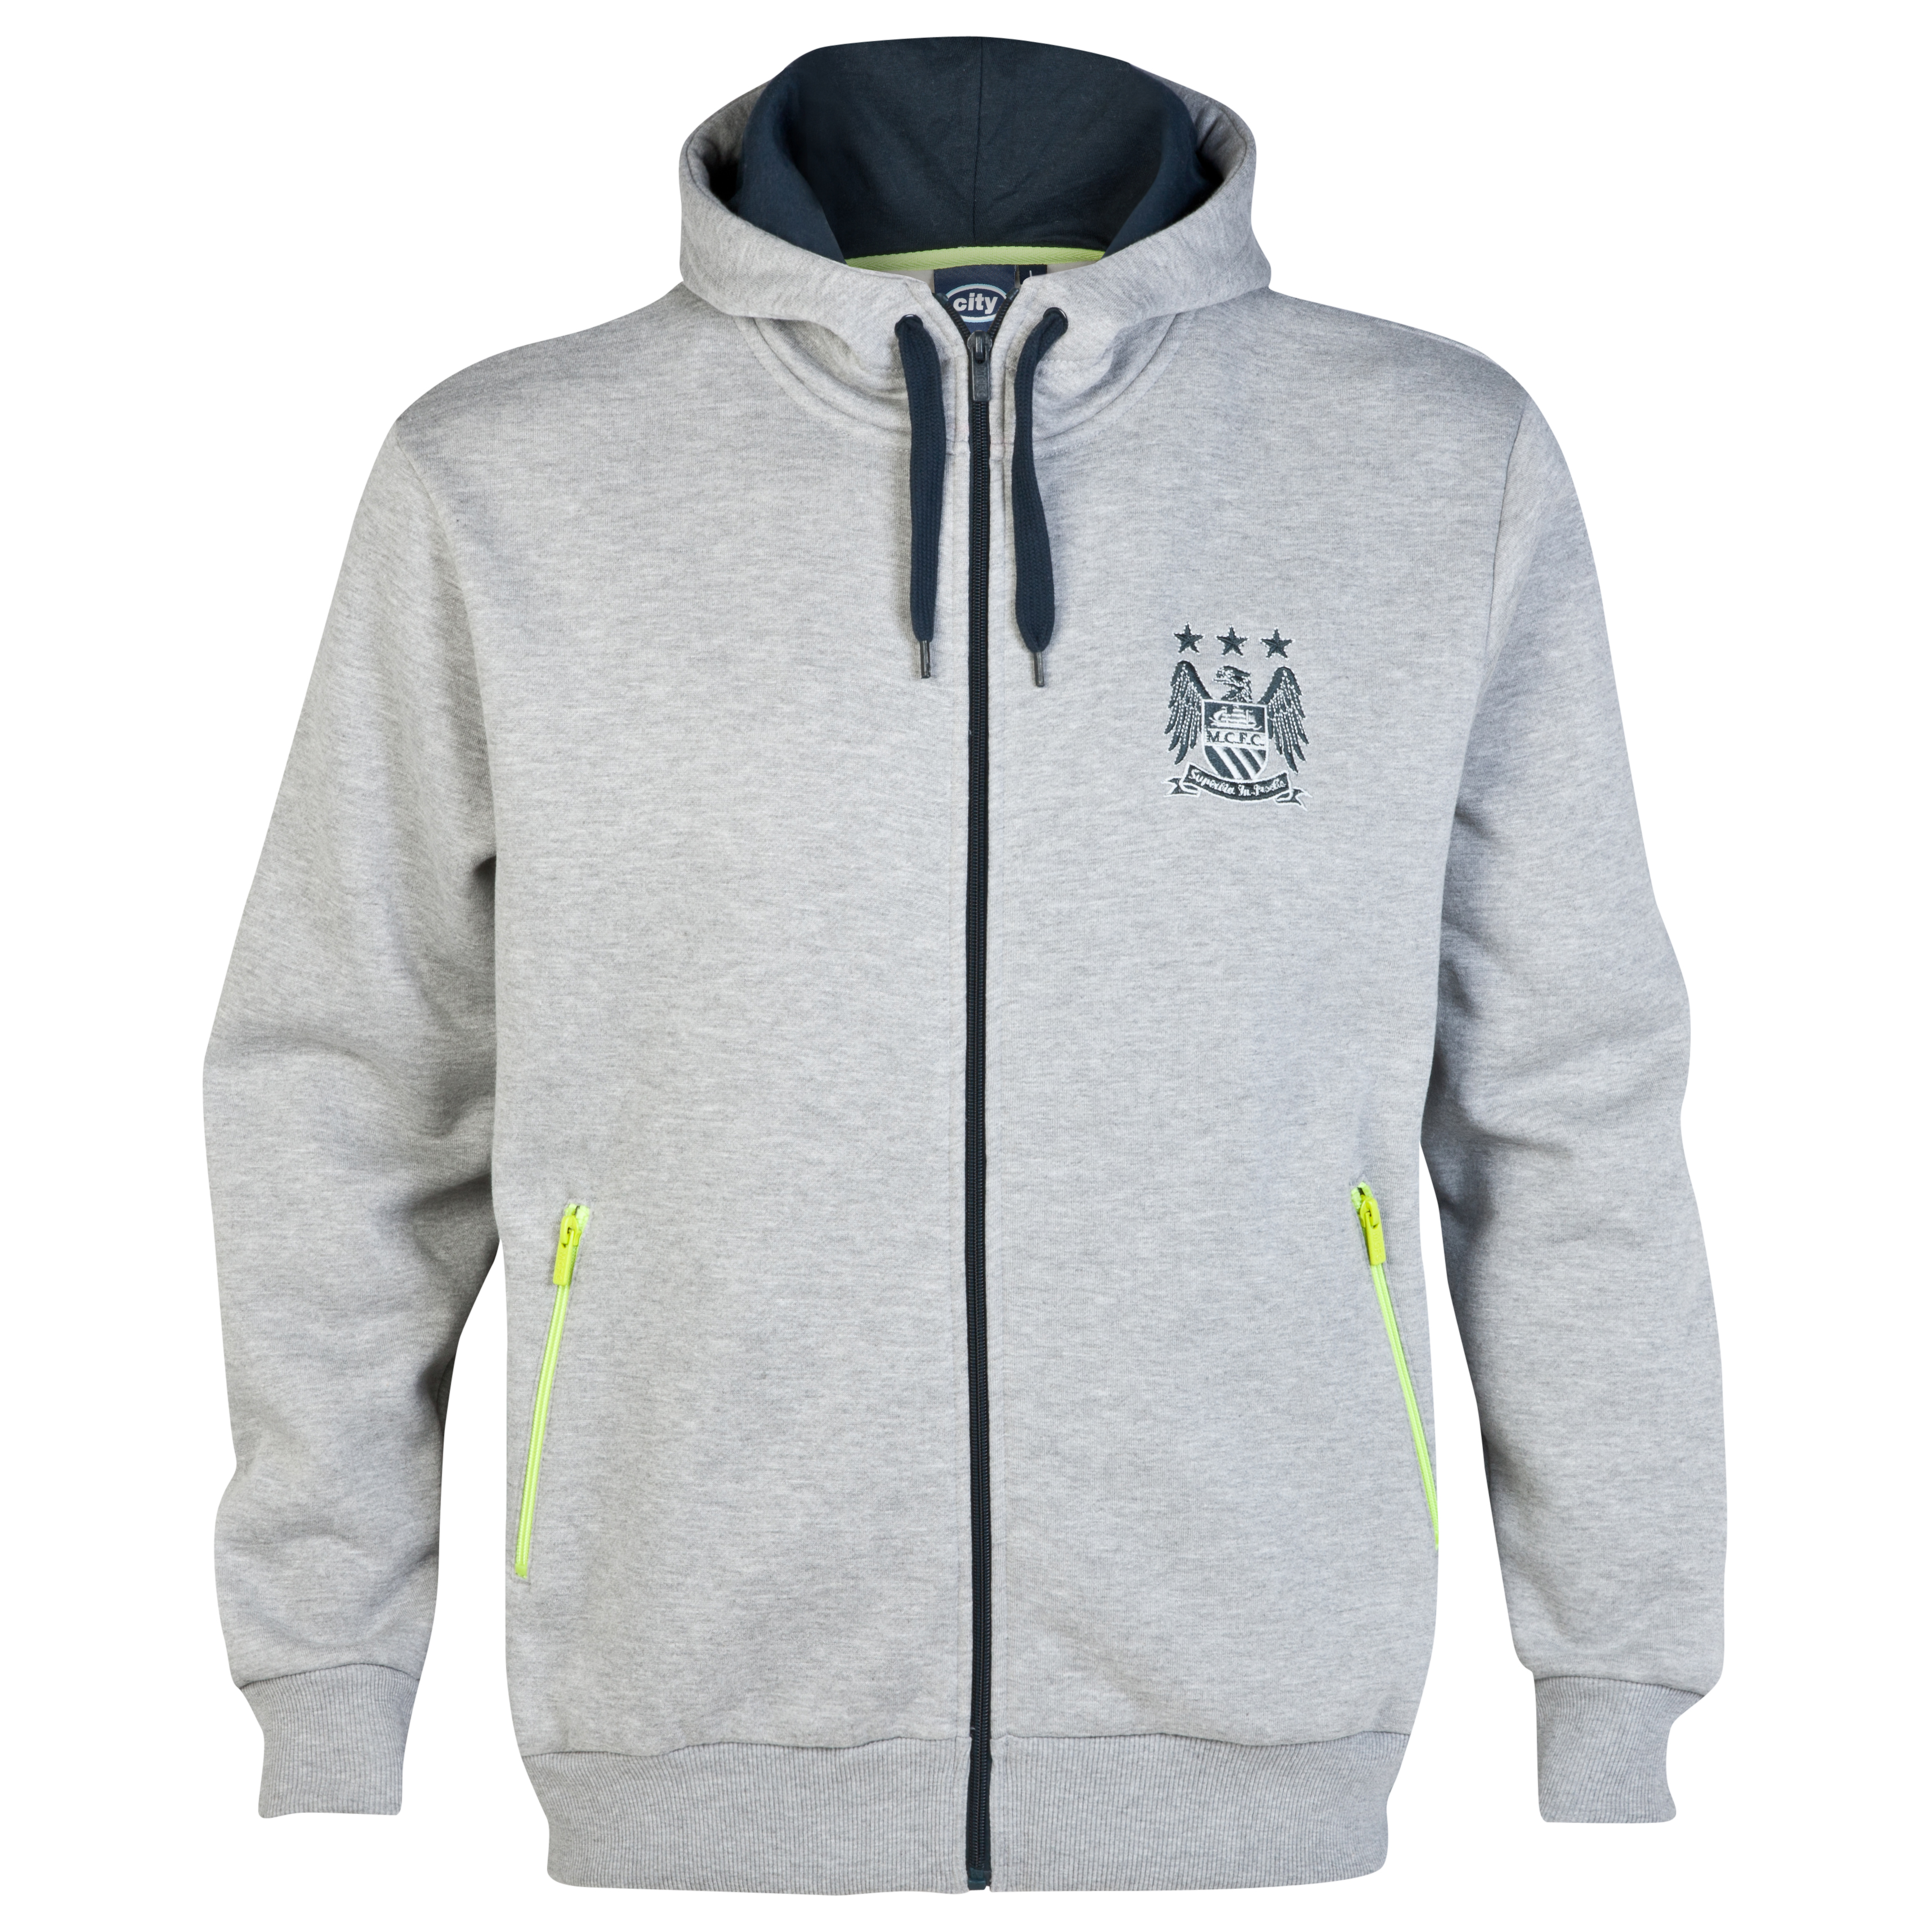 Mens Hoodies, Sweatshirts & Track Tops